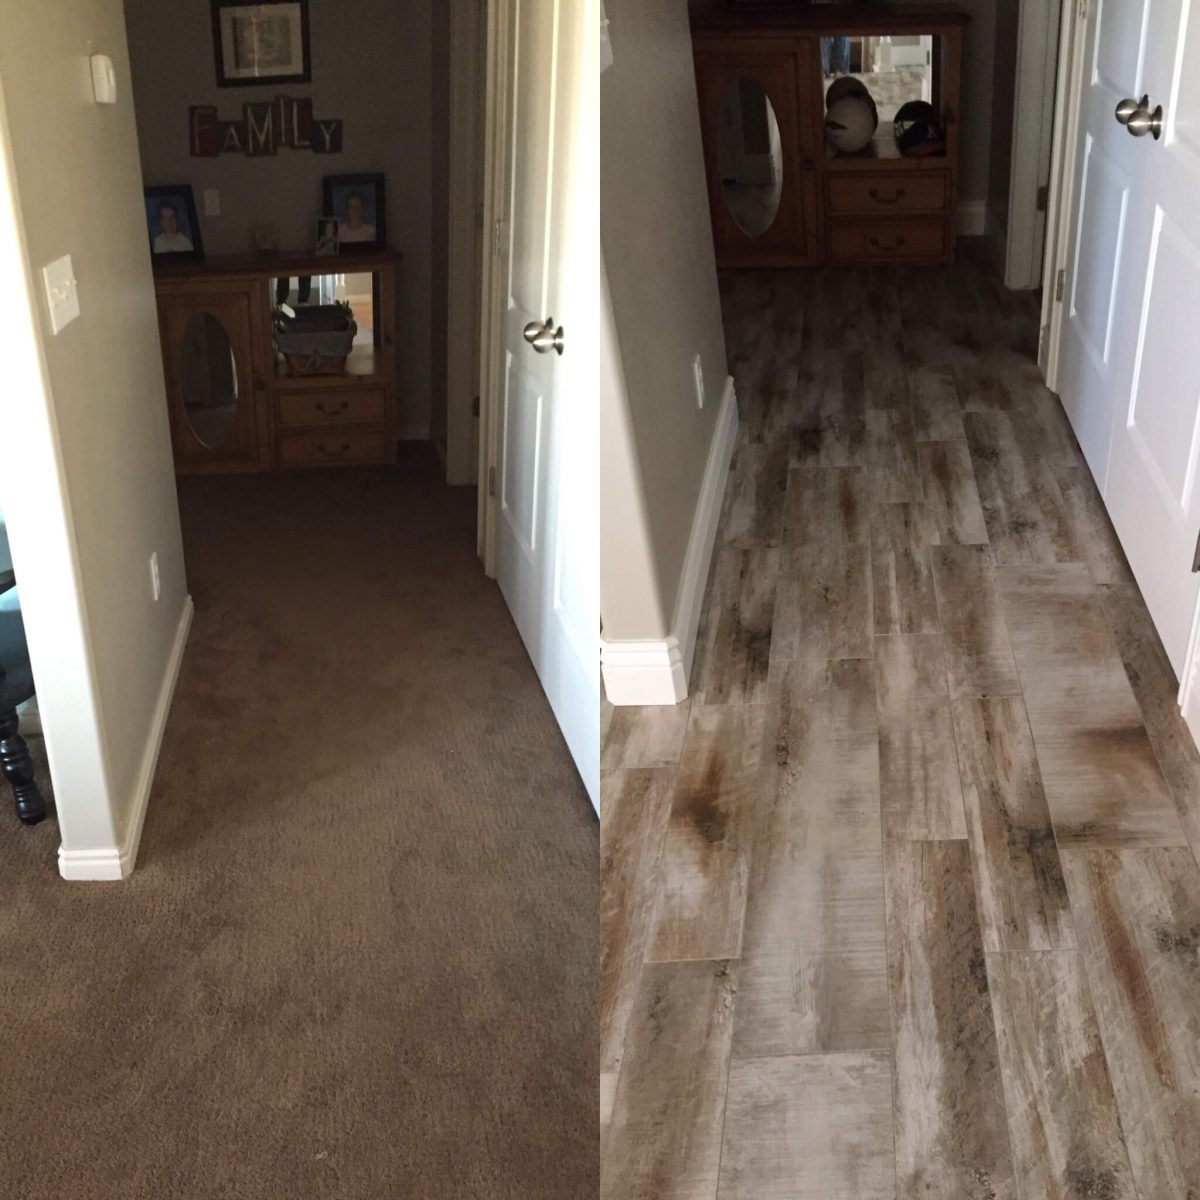 Flooring before and after reveal wood looking tile 365 days of buy direct in layton utah flooring that looks like wood but is tile dailygadgetfo Gallery